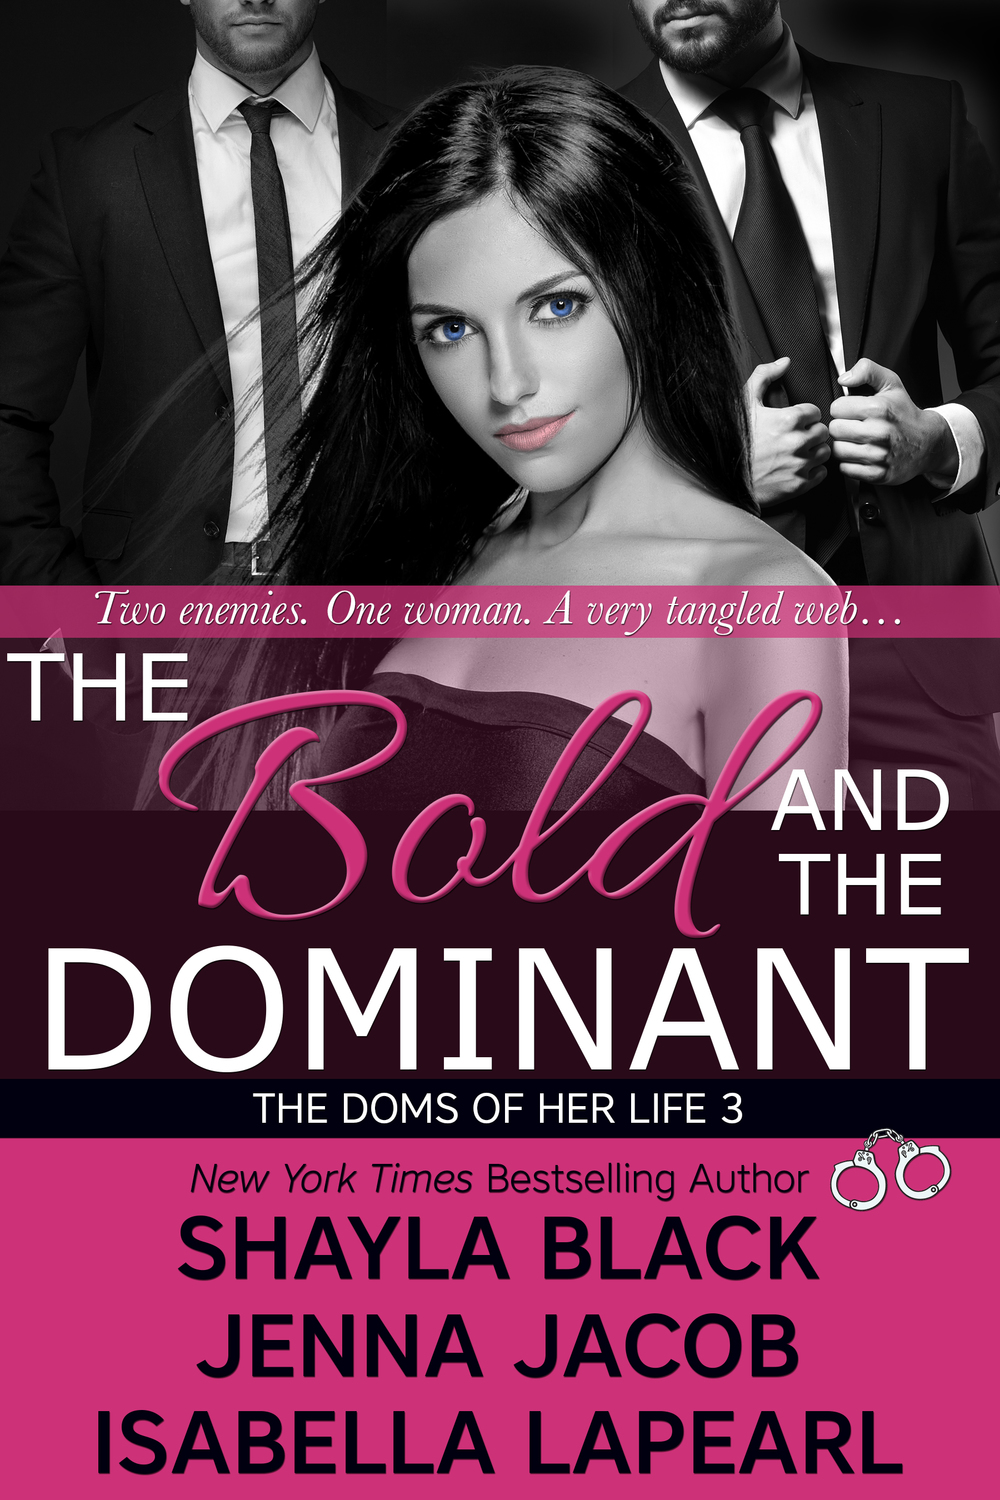 The Bold and the Dominant